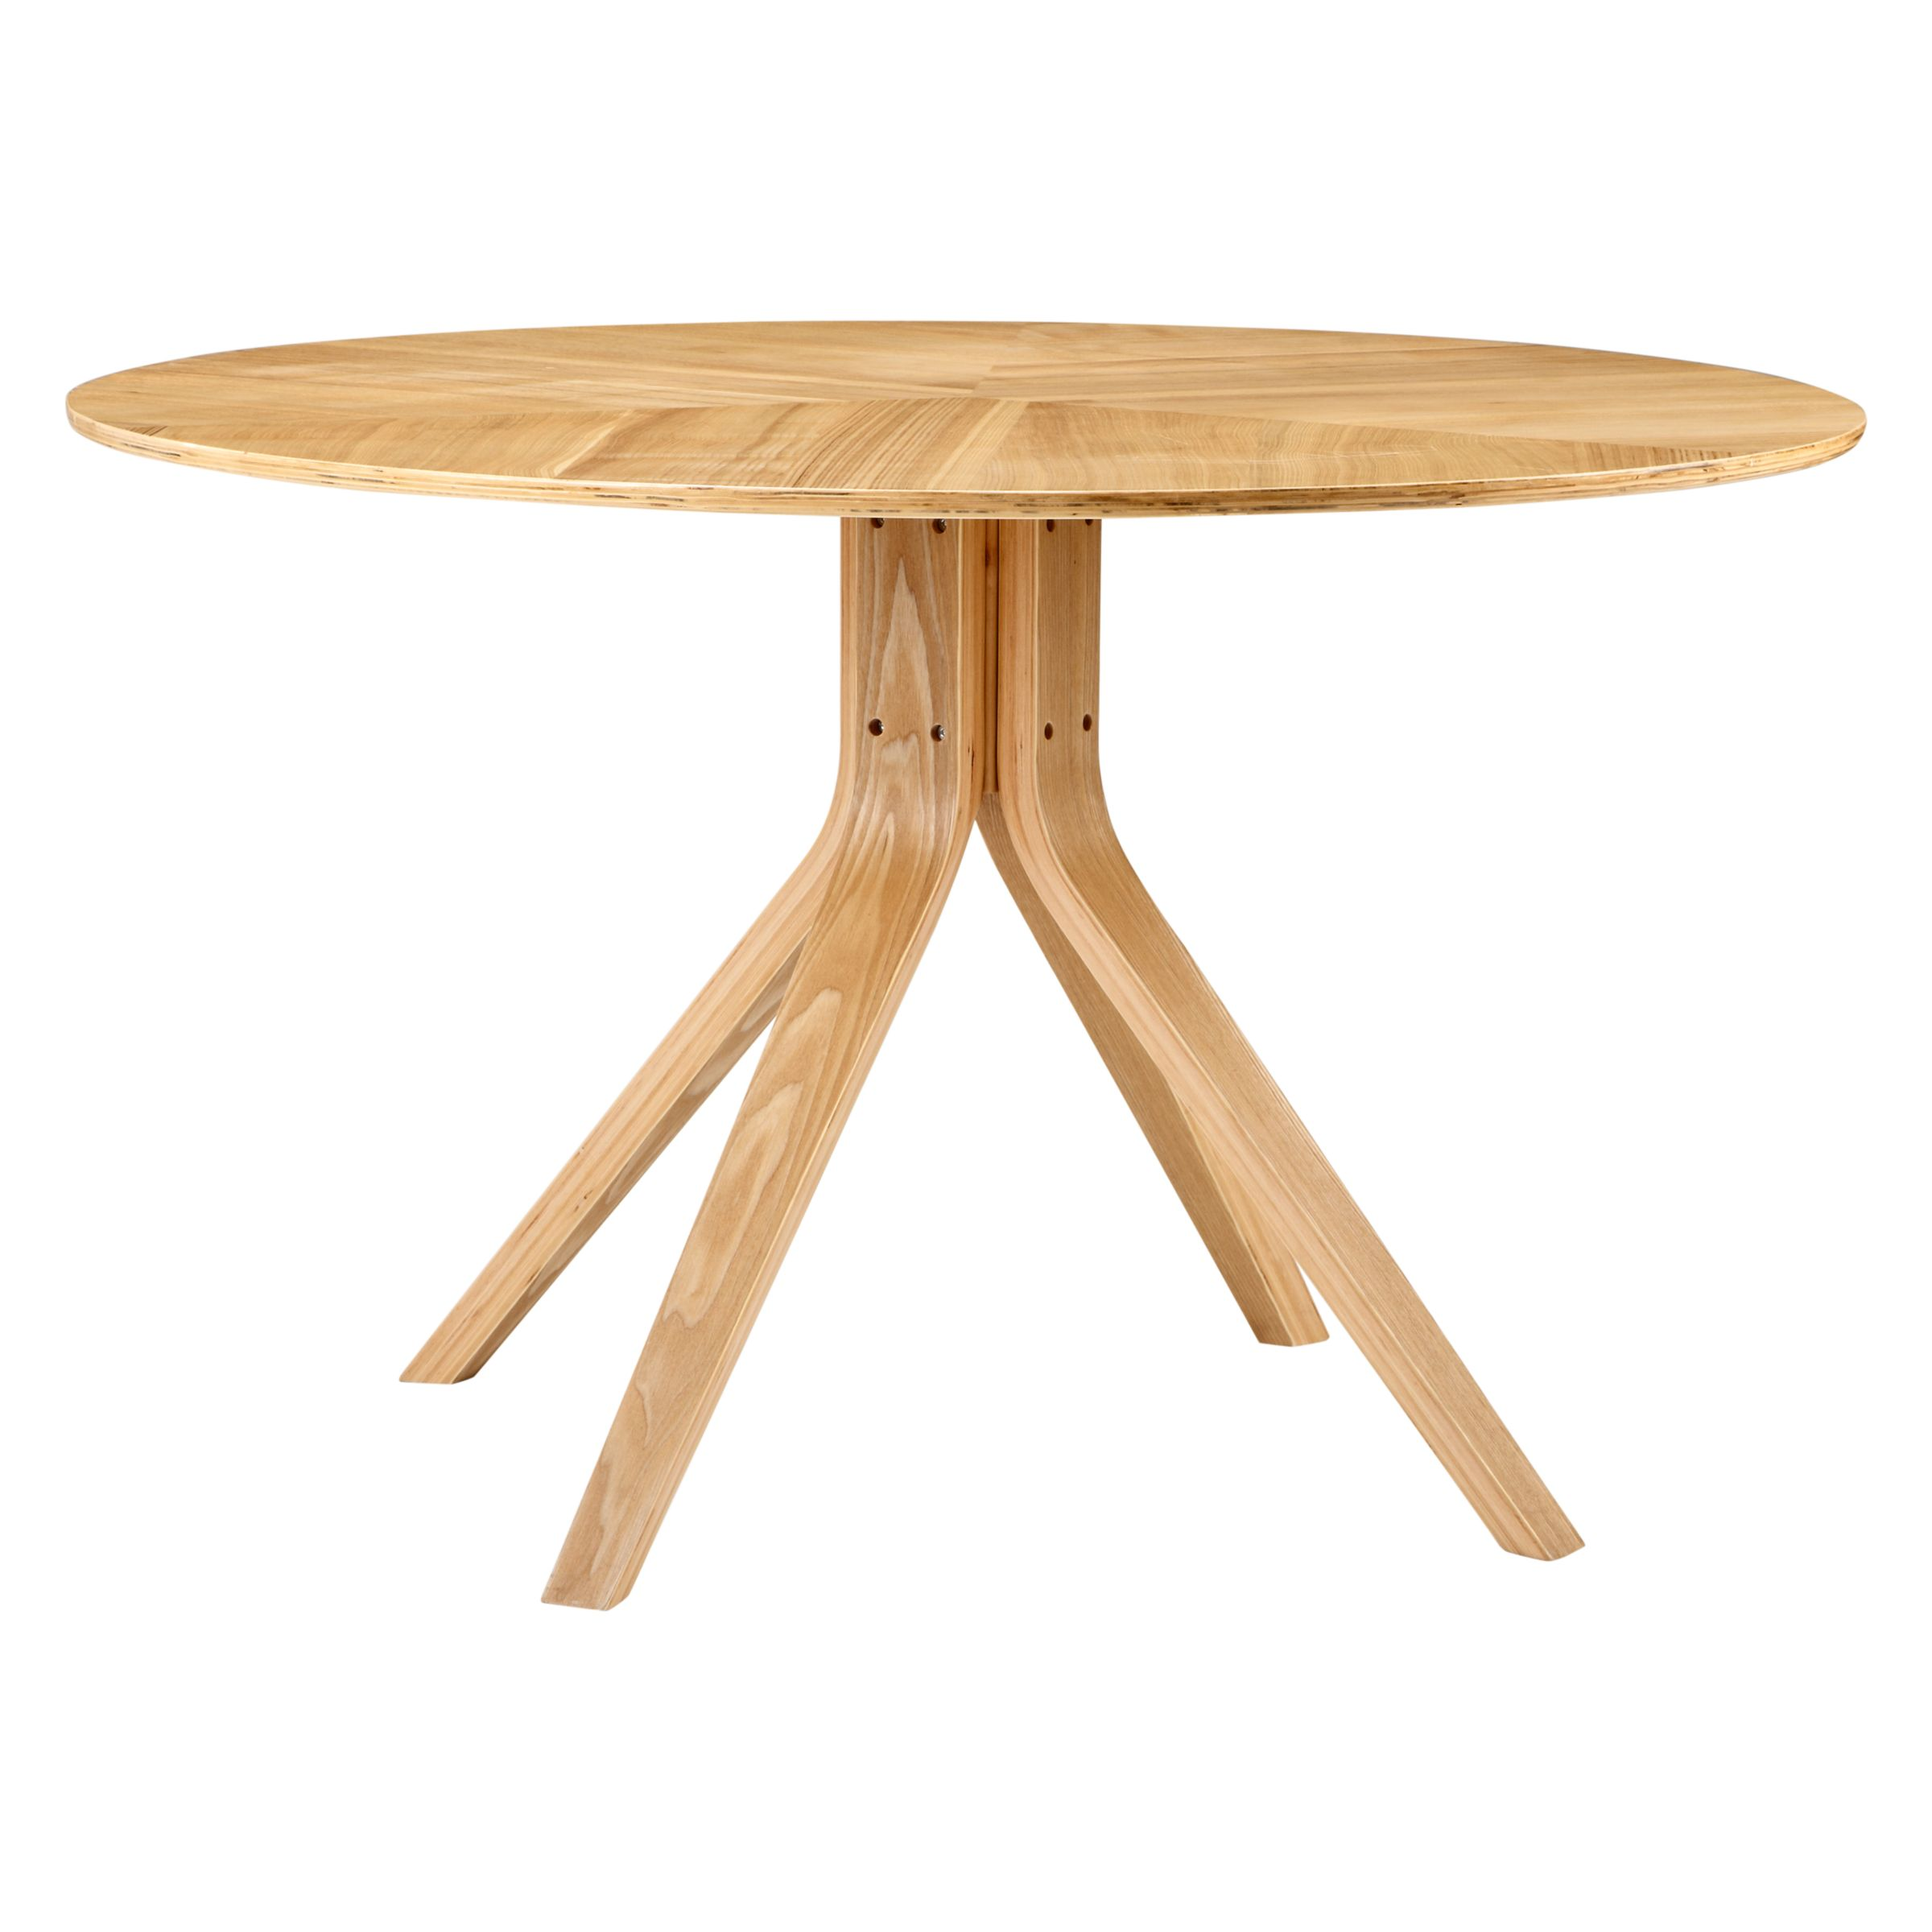 Round oak dining table Shop for cheap Furniture and Save  : 232100906alt1zoom from priceinspector.co.uk size 2400 x 2400 jpeg 172kB